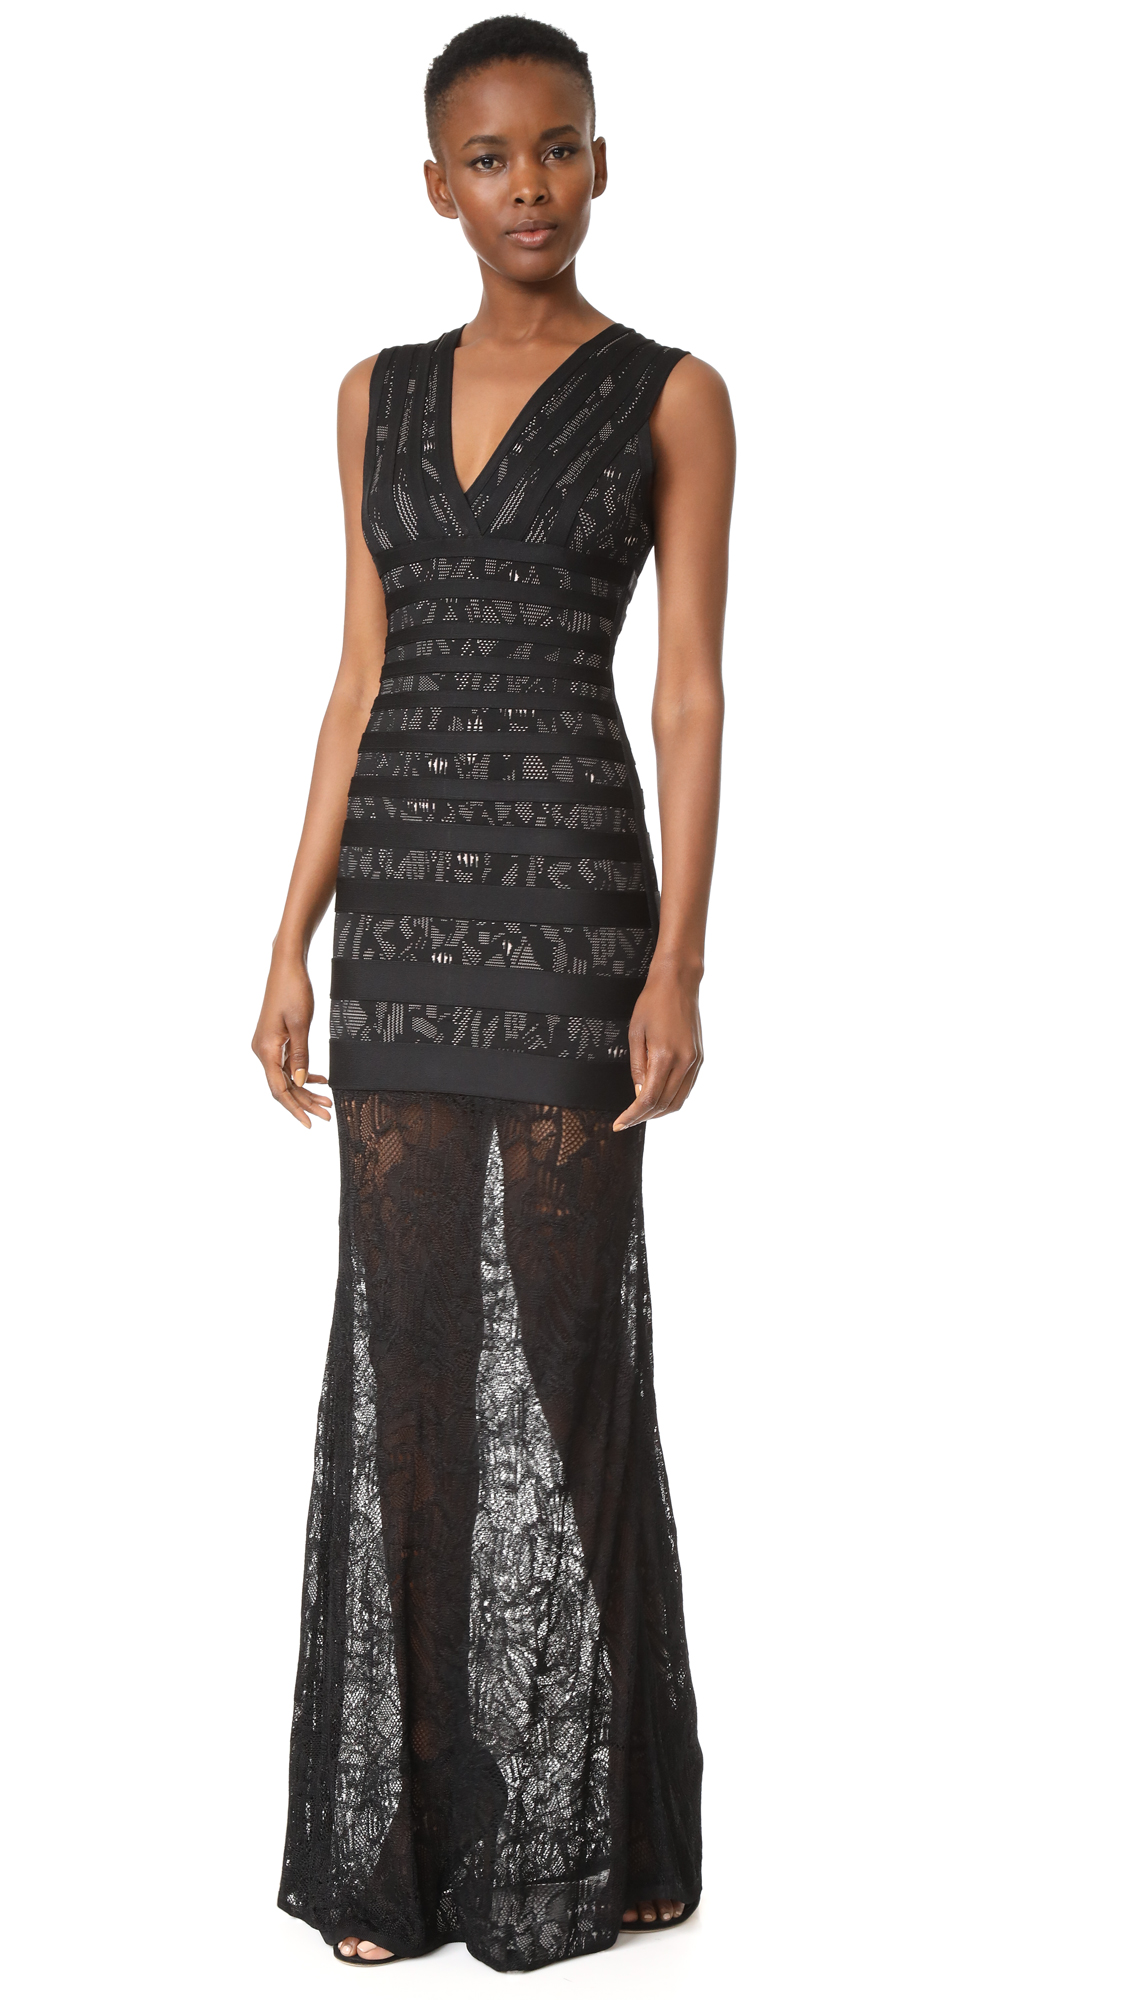 Herve Leger Striped Lace Inset Gown - Black Combo